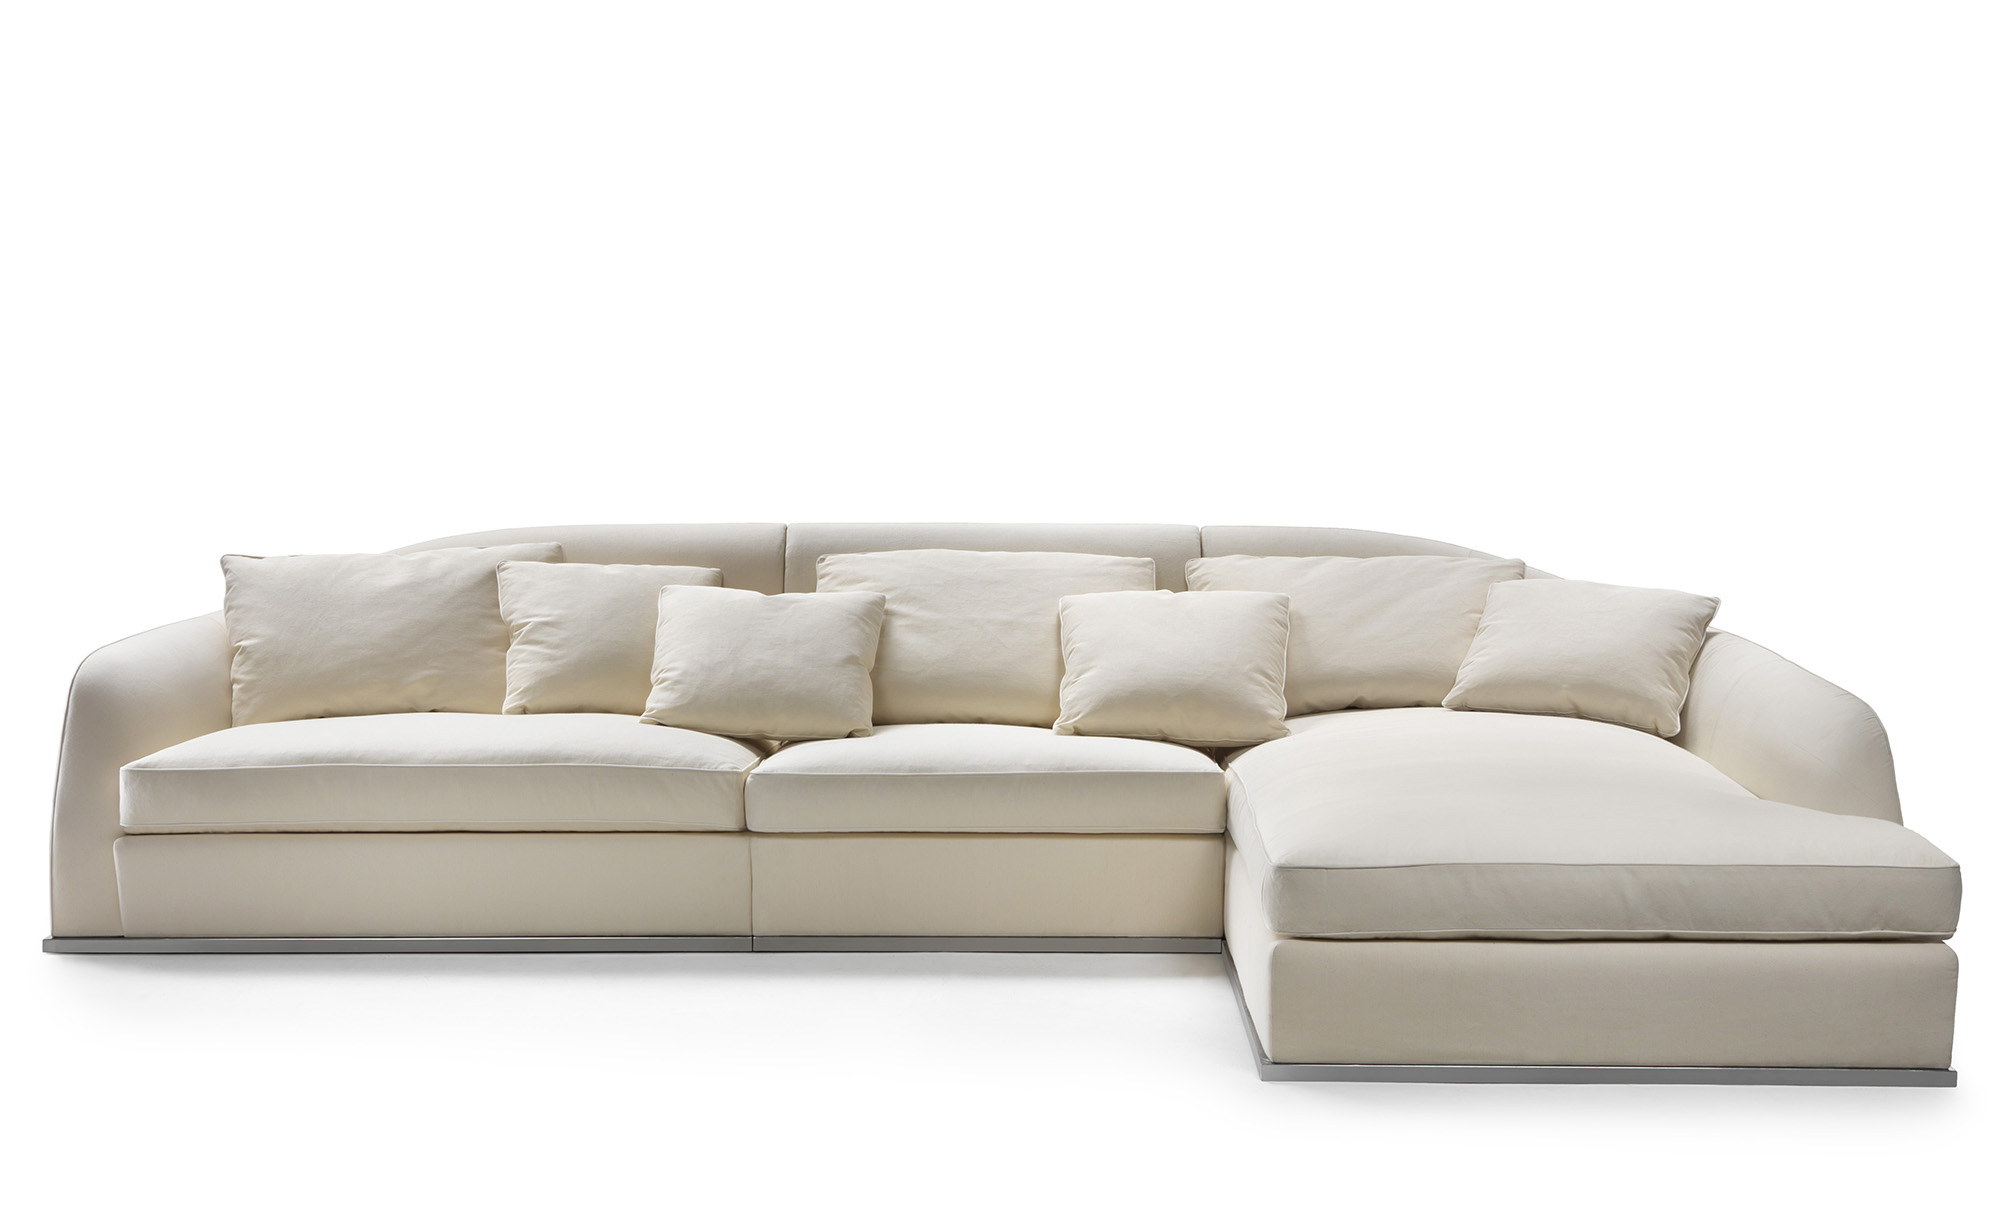 Couches Perth Alfred Modular Sofa By Flexform Mood Fanuli Furniture